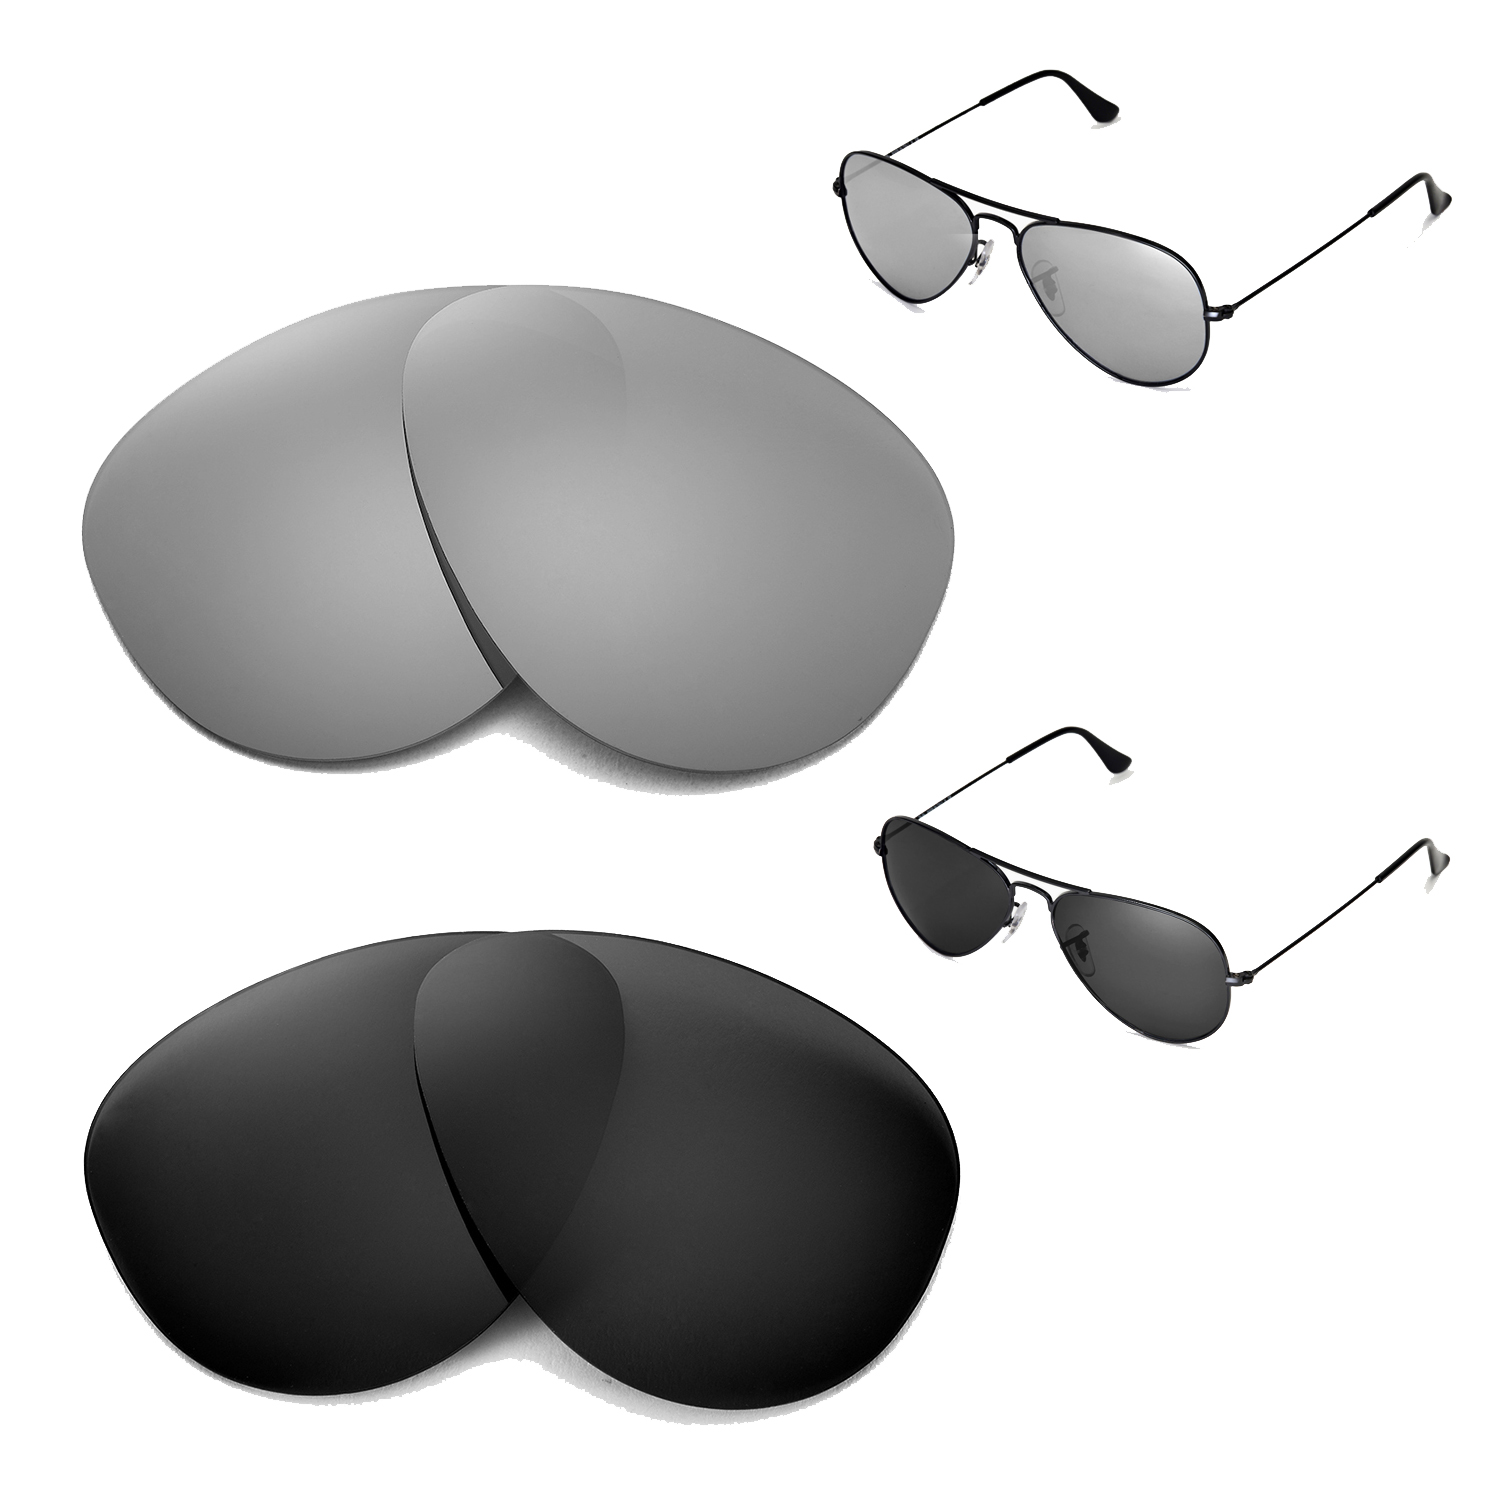 52b753d9c Details about WL Polarized Titanium + Black Lenses for Ray-Ban Aviator  Large Metal RB3025 55mm